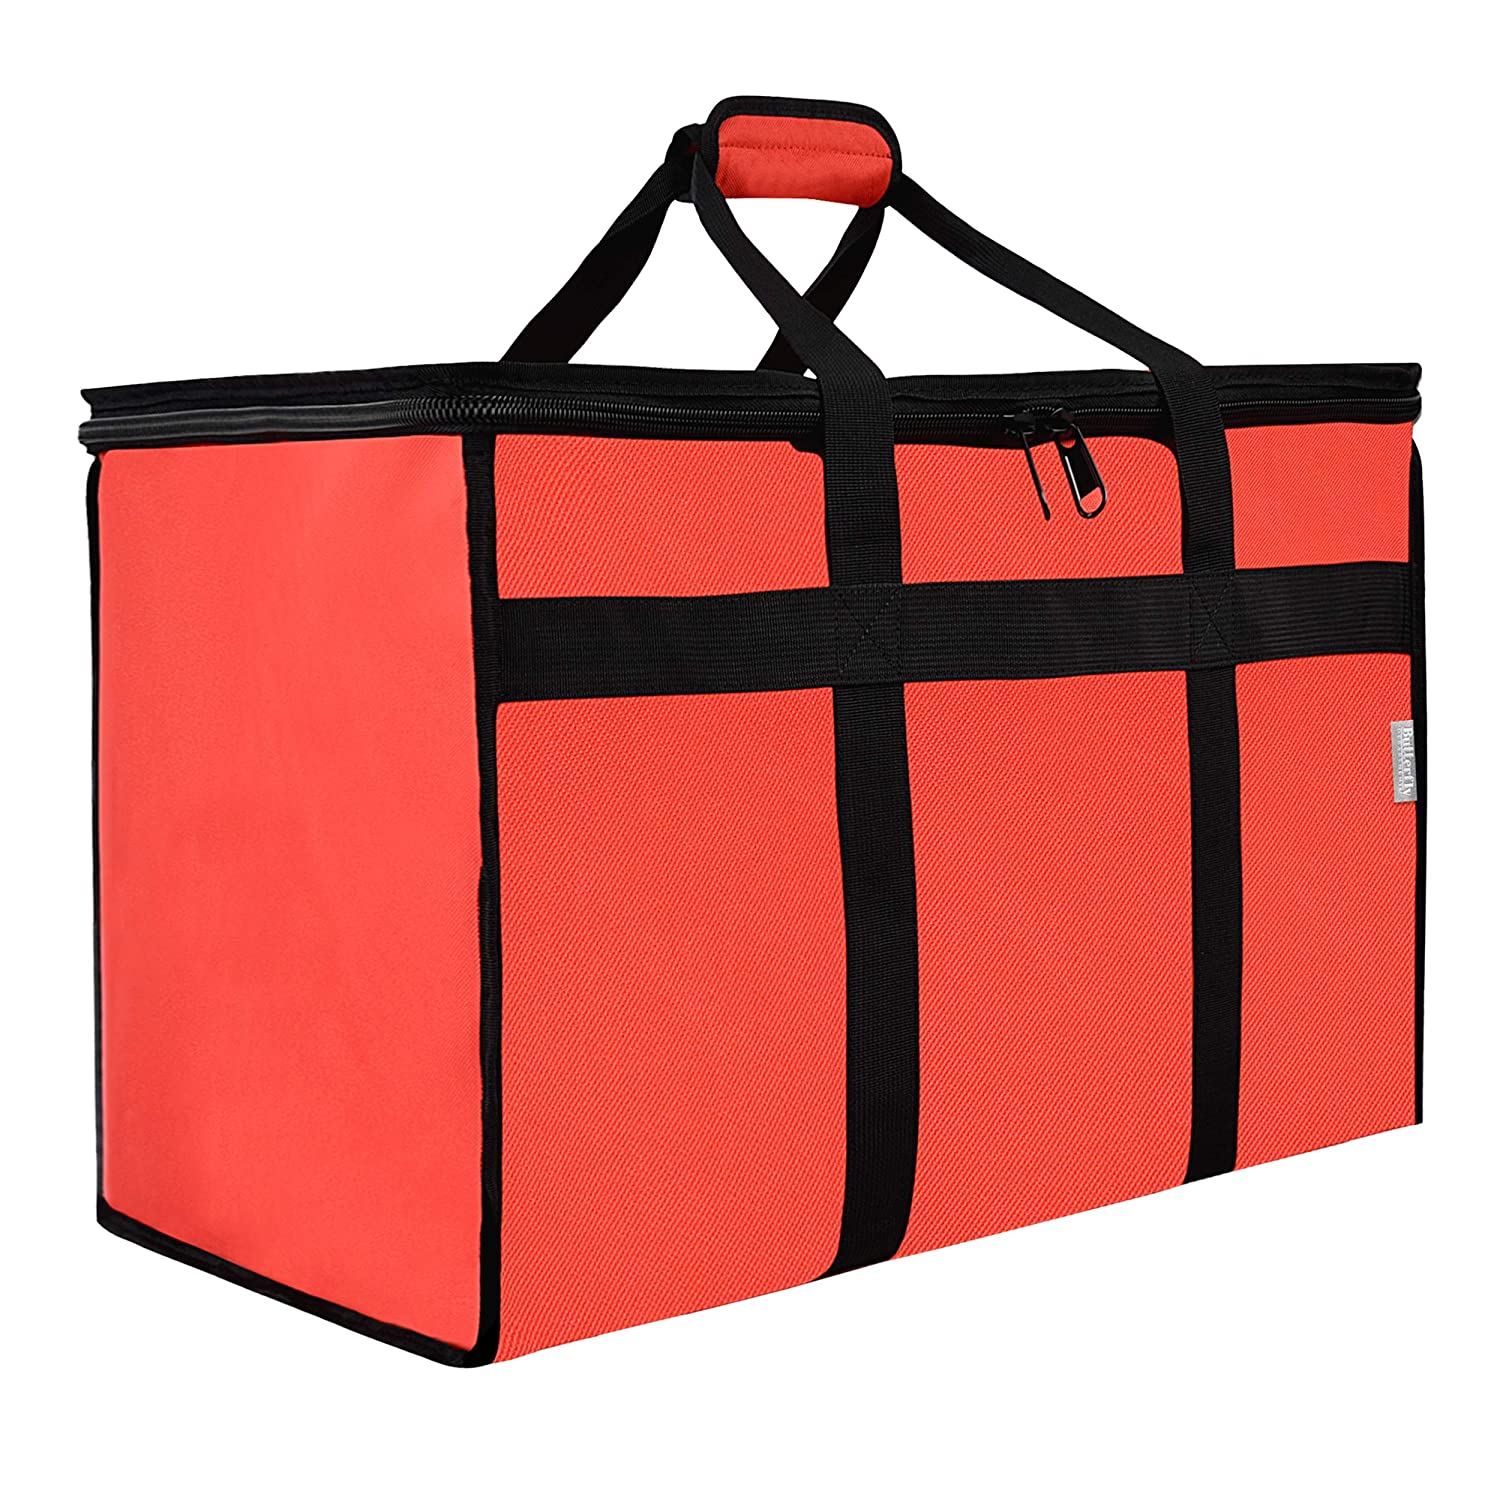 Butterfly Department Insulated Food Delivery Bag - 23x14x15 inches - Waterproof Interior - Ideal For Commercial Catering, Uber Eats, DoorDash, Grubhub, Postmates - Reusable Grocery Bag - Professional and Heavy-Duty - XXL - Red